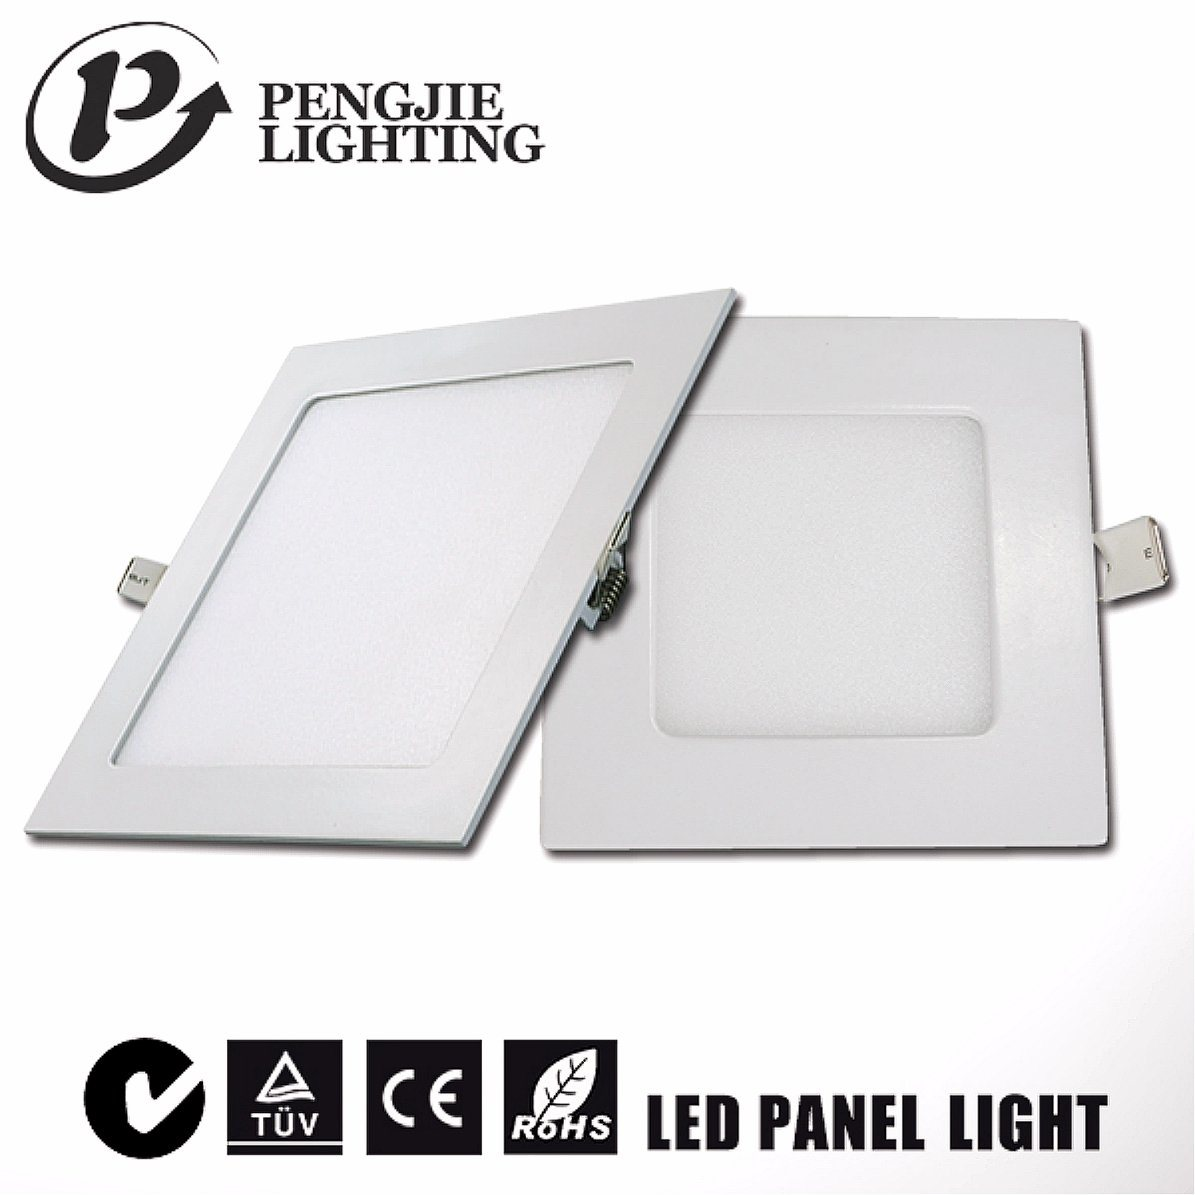 18W Slim Aluminum LED Panel Light for Home Ceiling Lighting